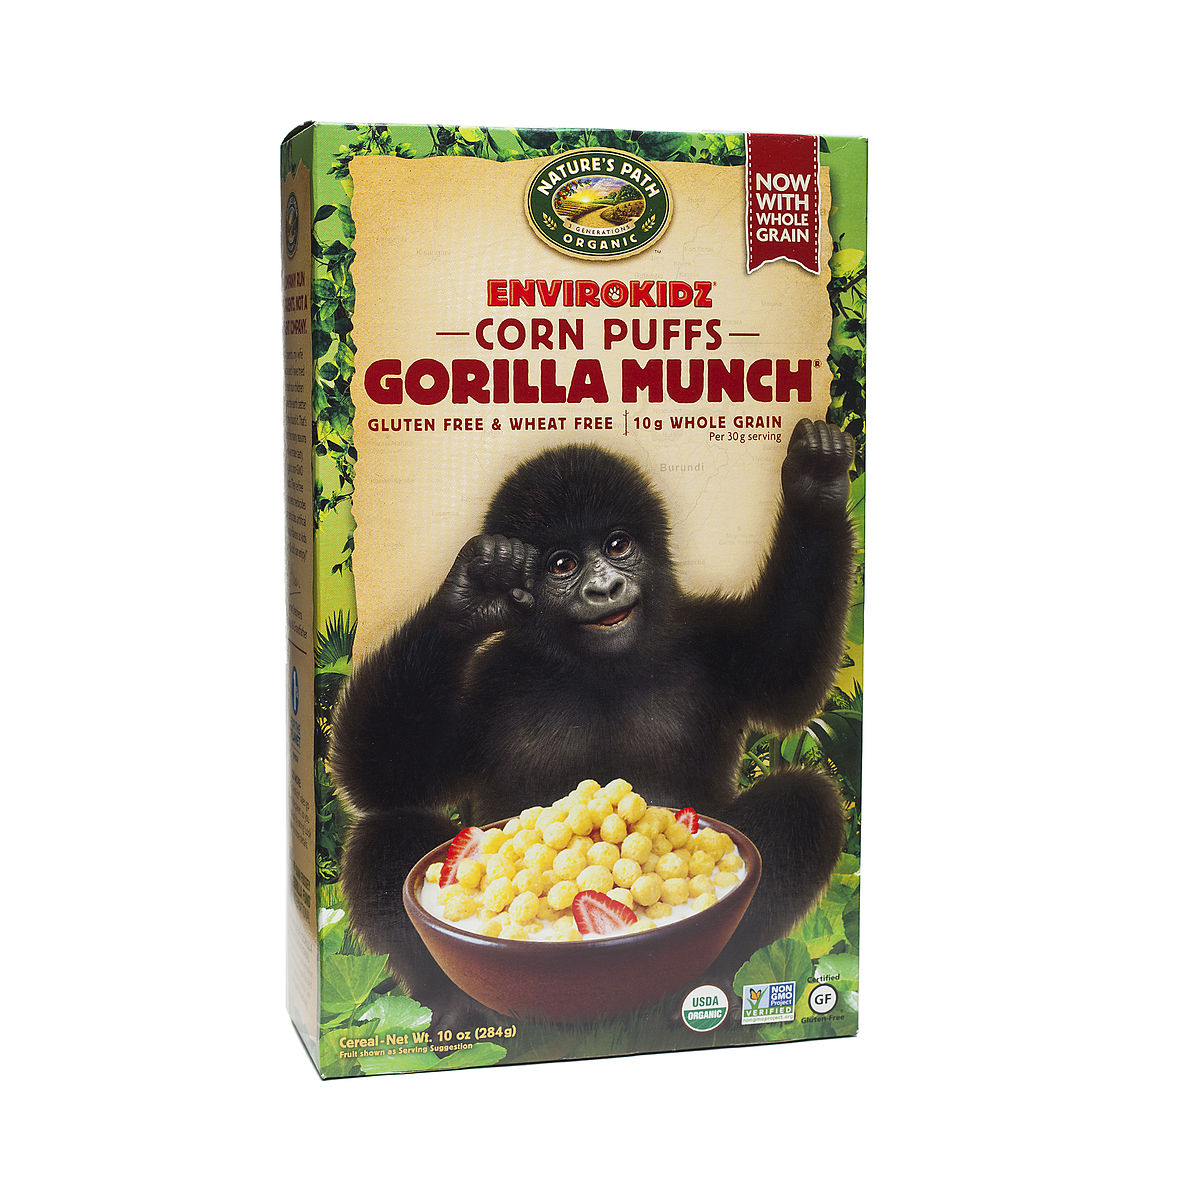 Gorilla Munch Corn Puffs Cereal Organic By Envirokidz